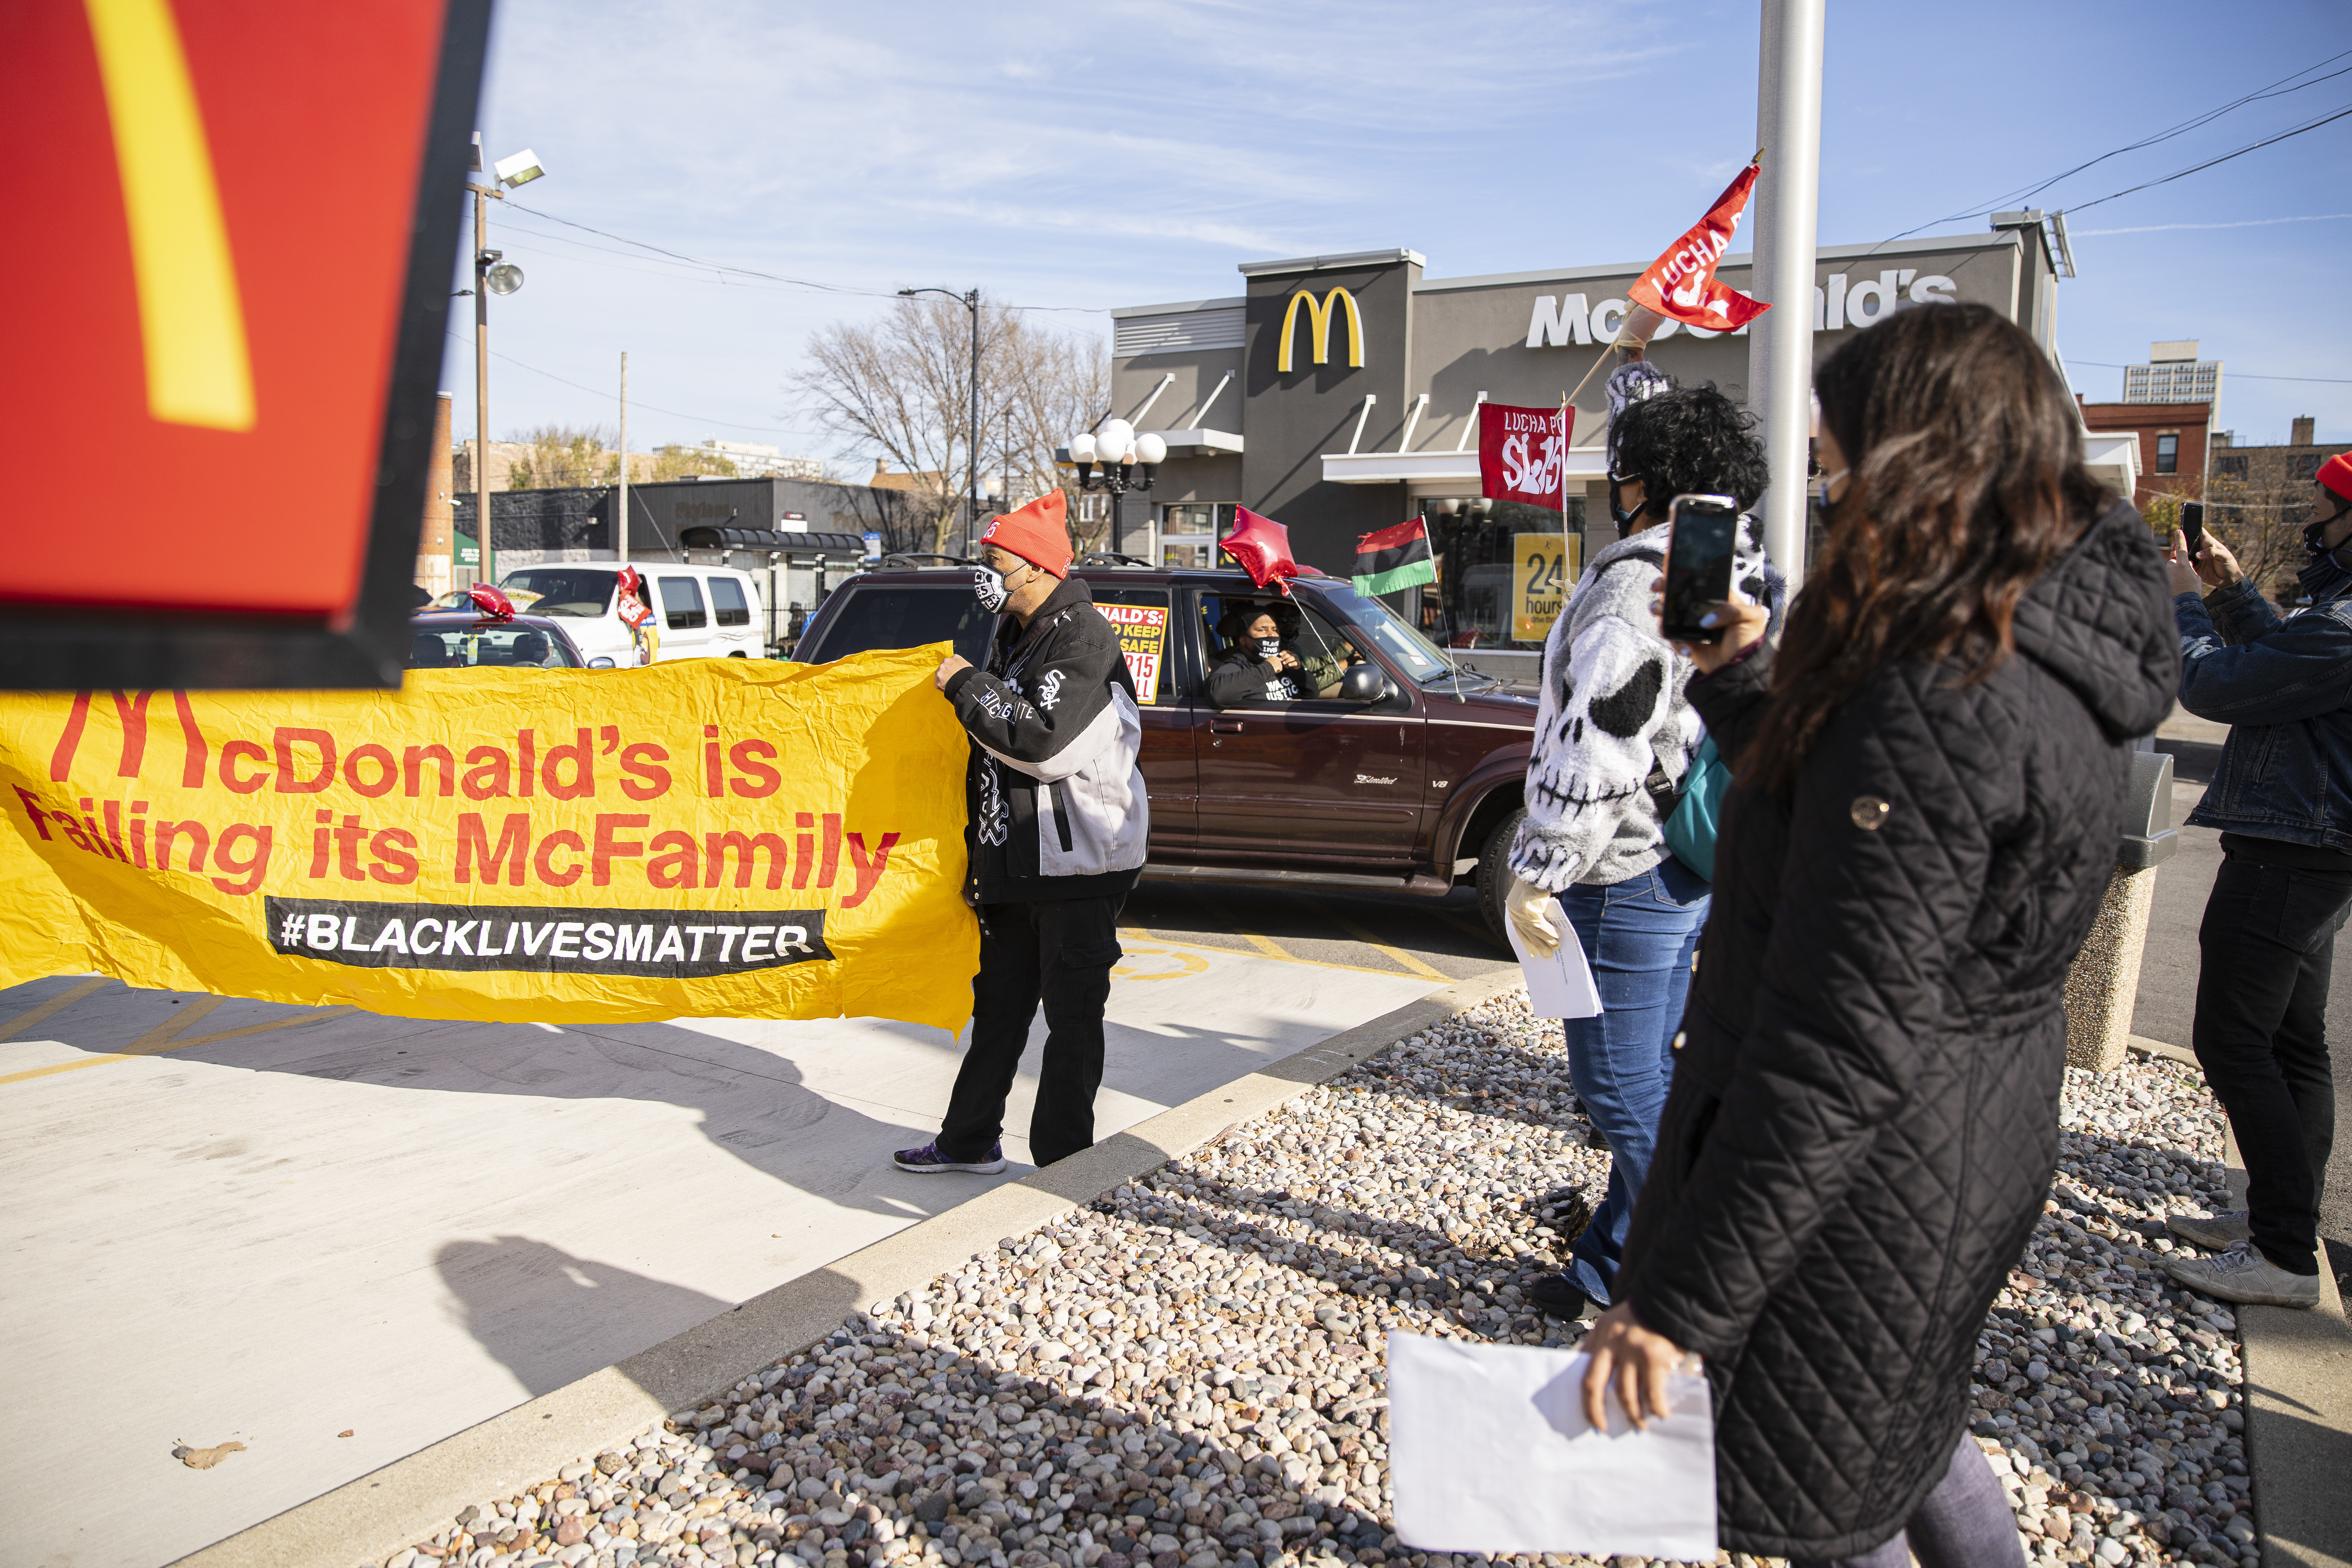 Protesters hold banners and ride around in a caravan Thursday outside McDonald's at 207 E. 35th St. in Bronzeville.